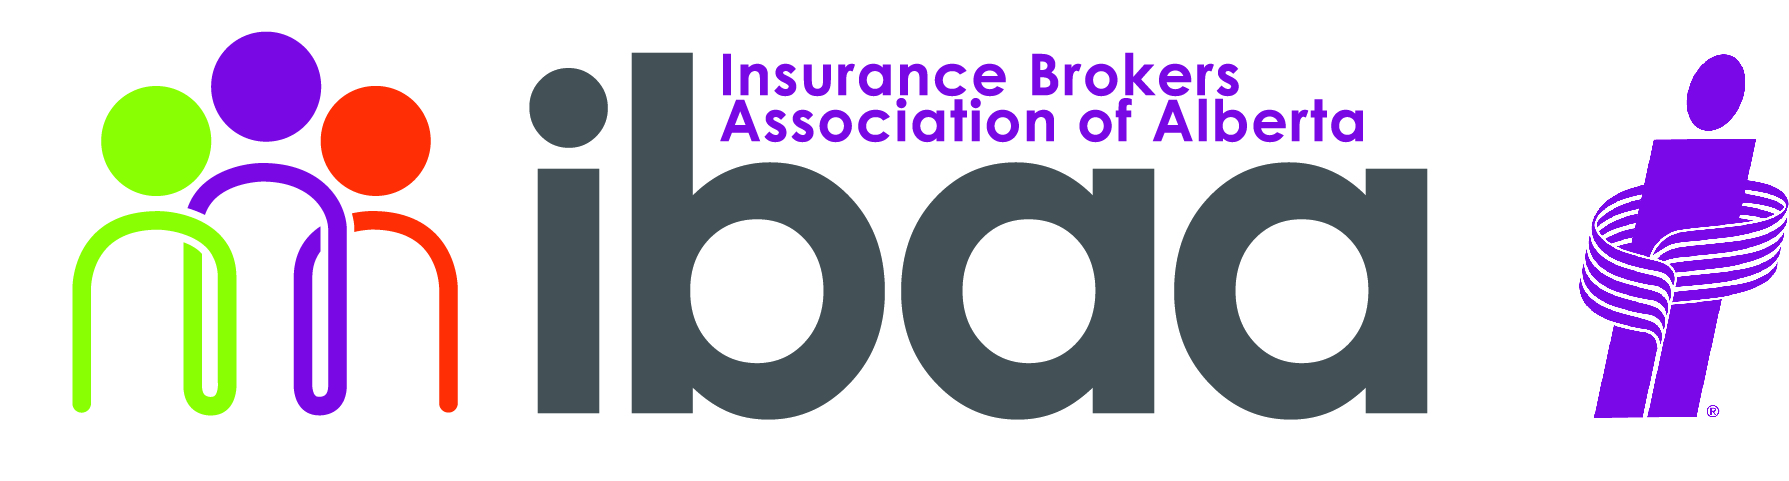 Insurance Broker's Association of Alberta